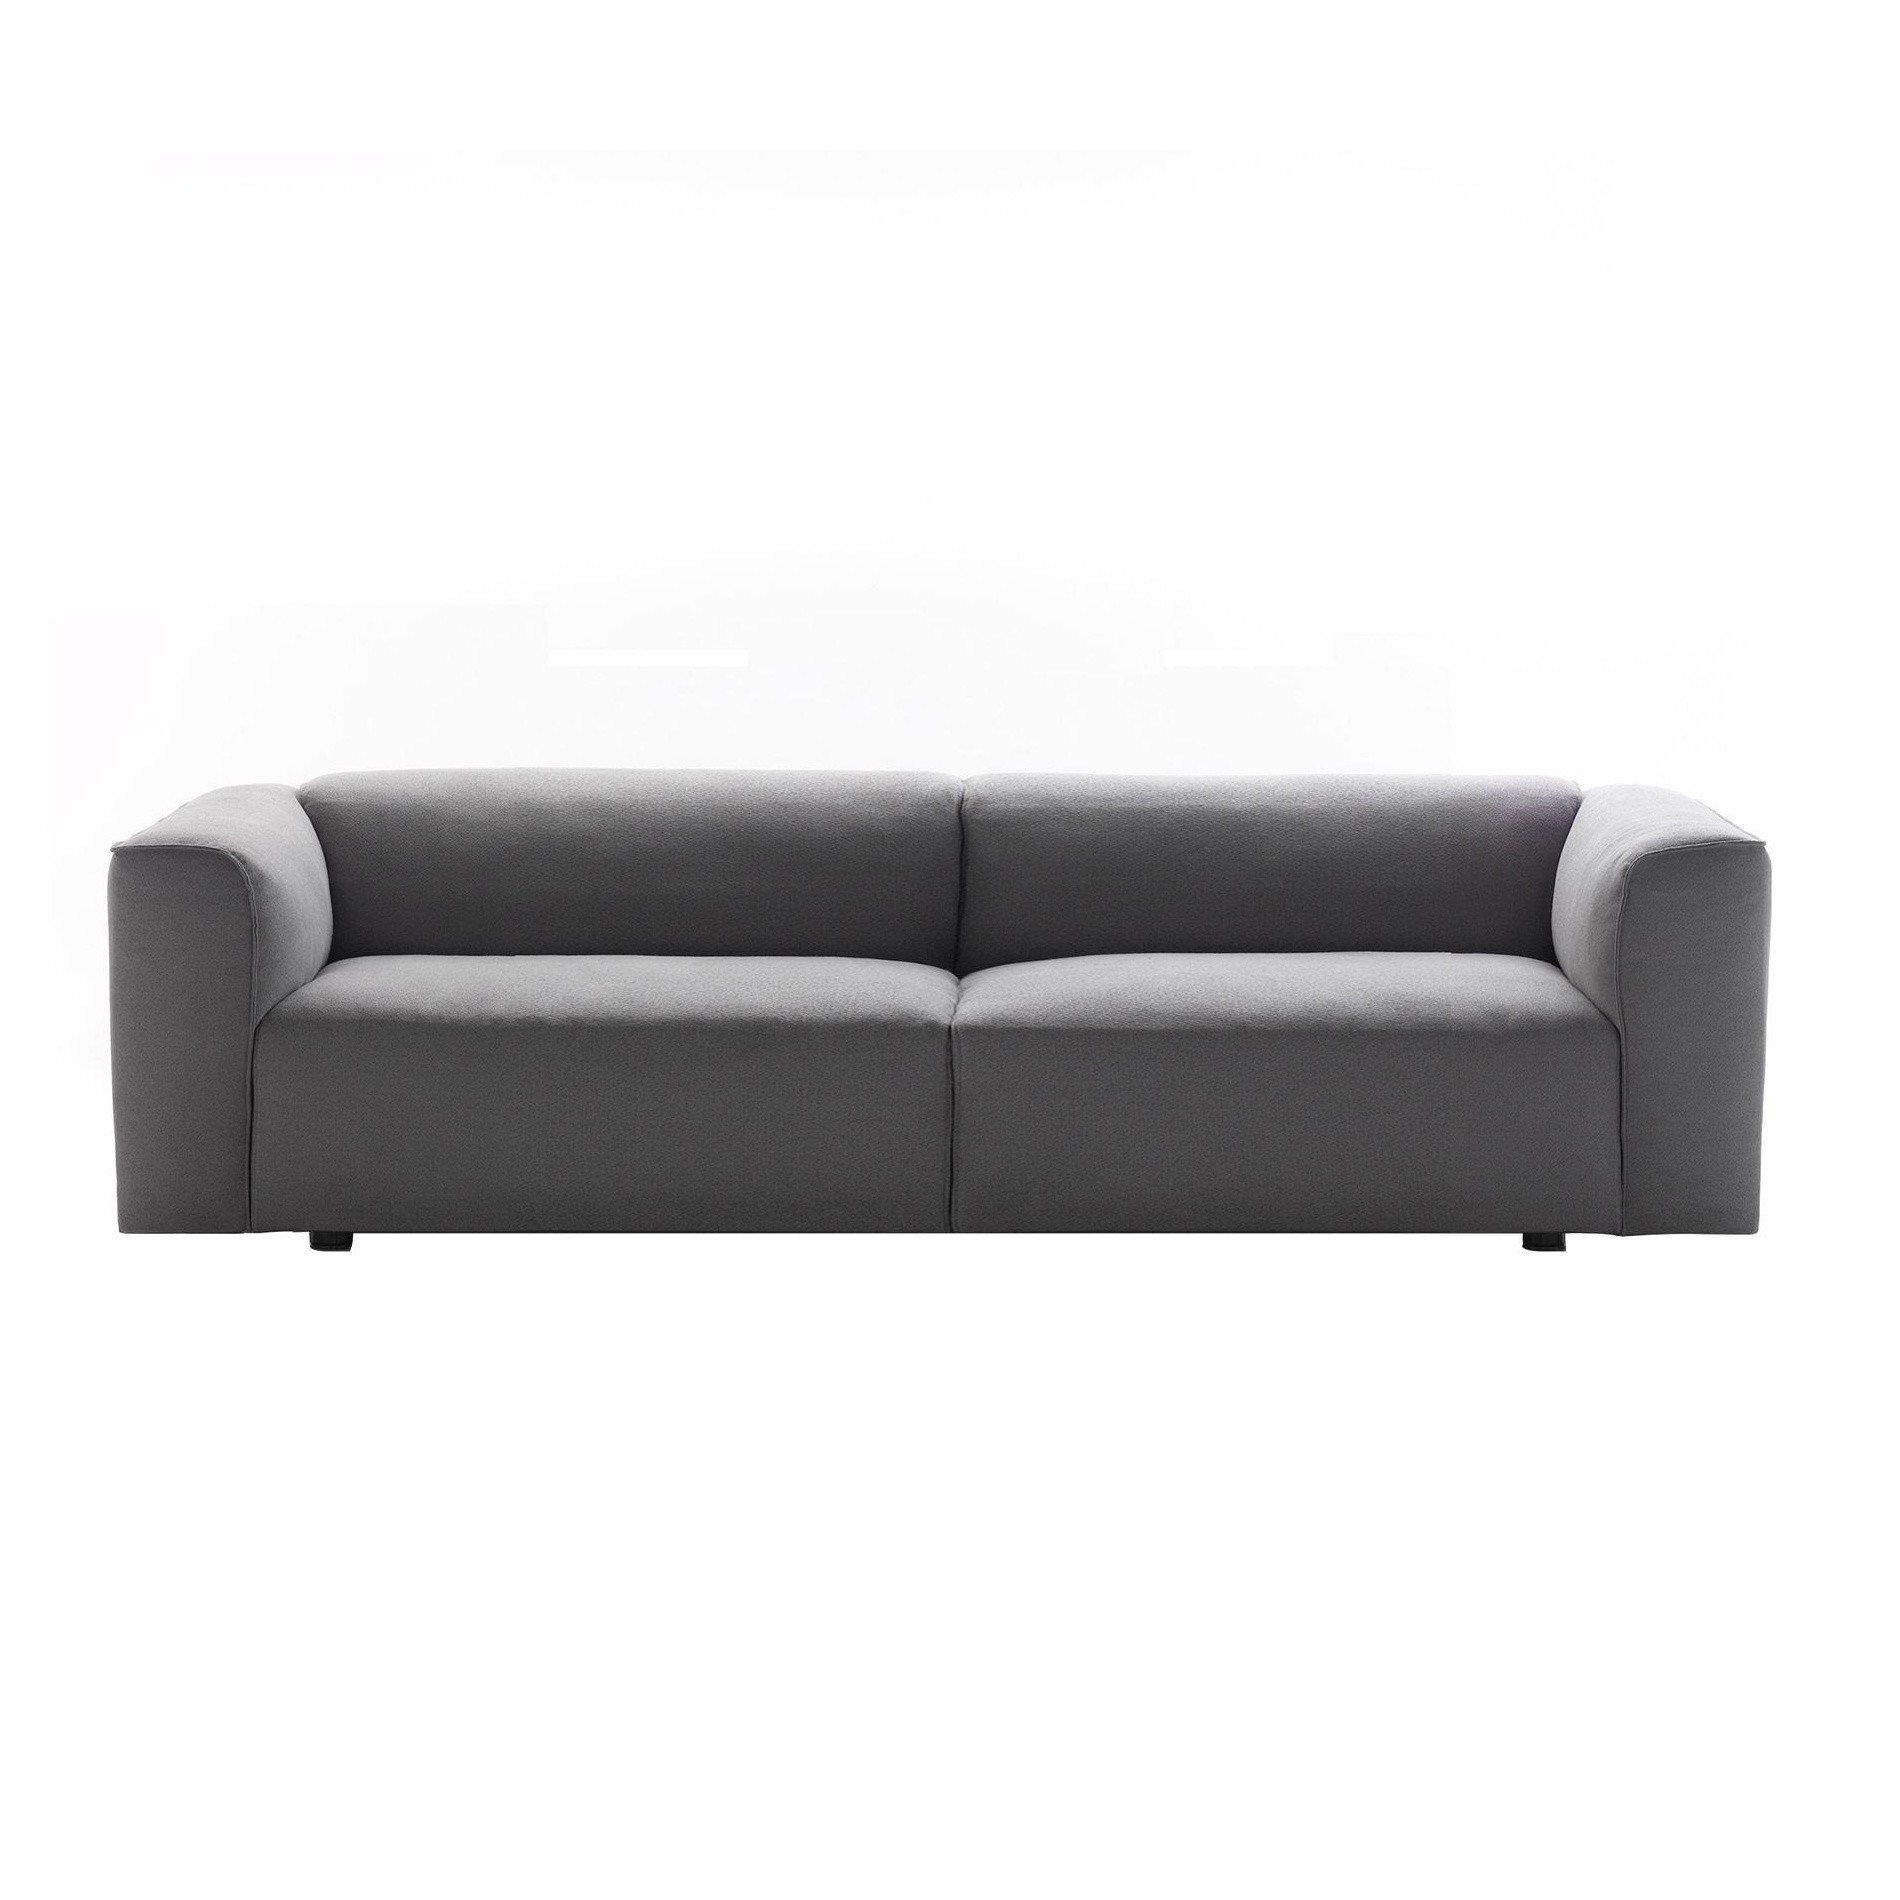 Einsitzer Sofa Mate 2012 3s Sofa 3 Seater